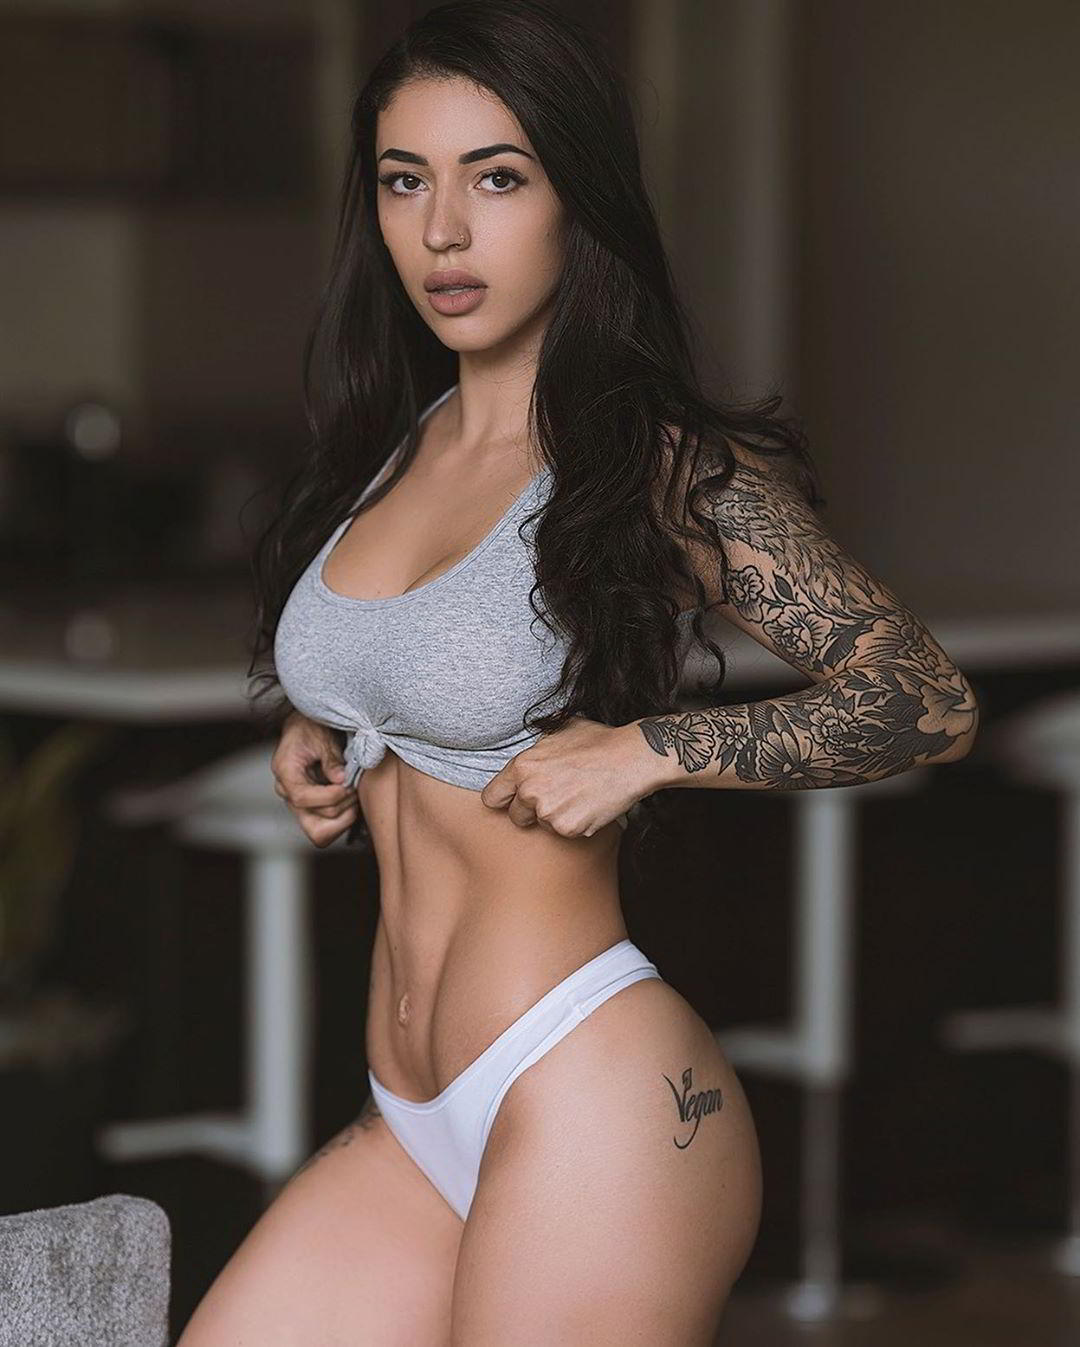 Bianca Taylor- ISSA Certified Personal Trainer